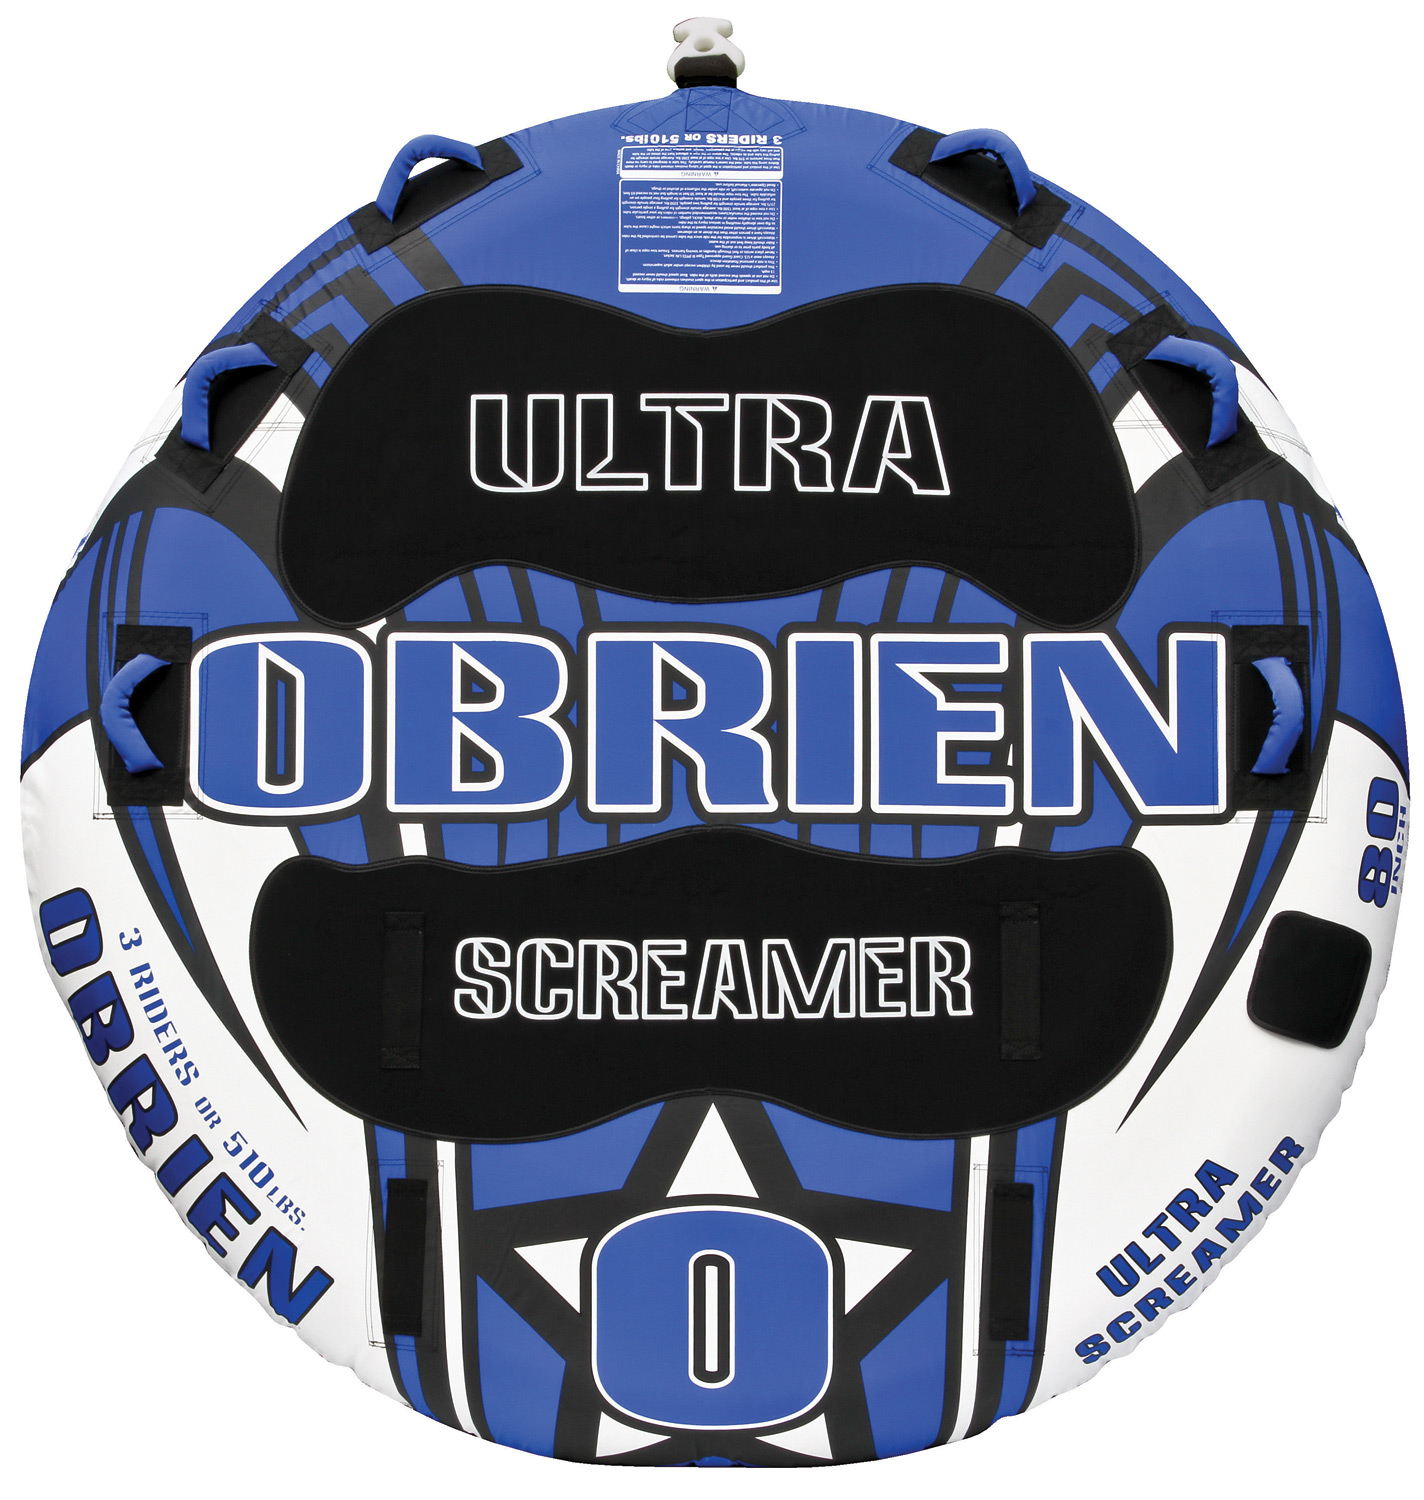 "Key Features of the O'Brien Ultra Screamer Tube: 80"" Up To 3 Riders 28 Gauge Pvc Fully Covered 840 D Nylon 6 Handles W/ Eva Knuckle Guards 2 Eva Pads 1 Quick Connect Hook 1 Boston Valve One Year Limited Warranty - $229.99"